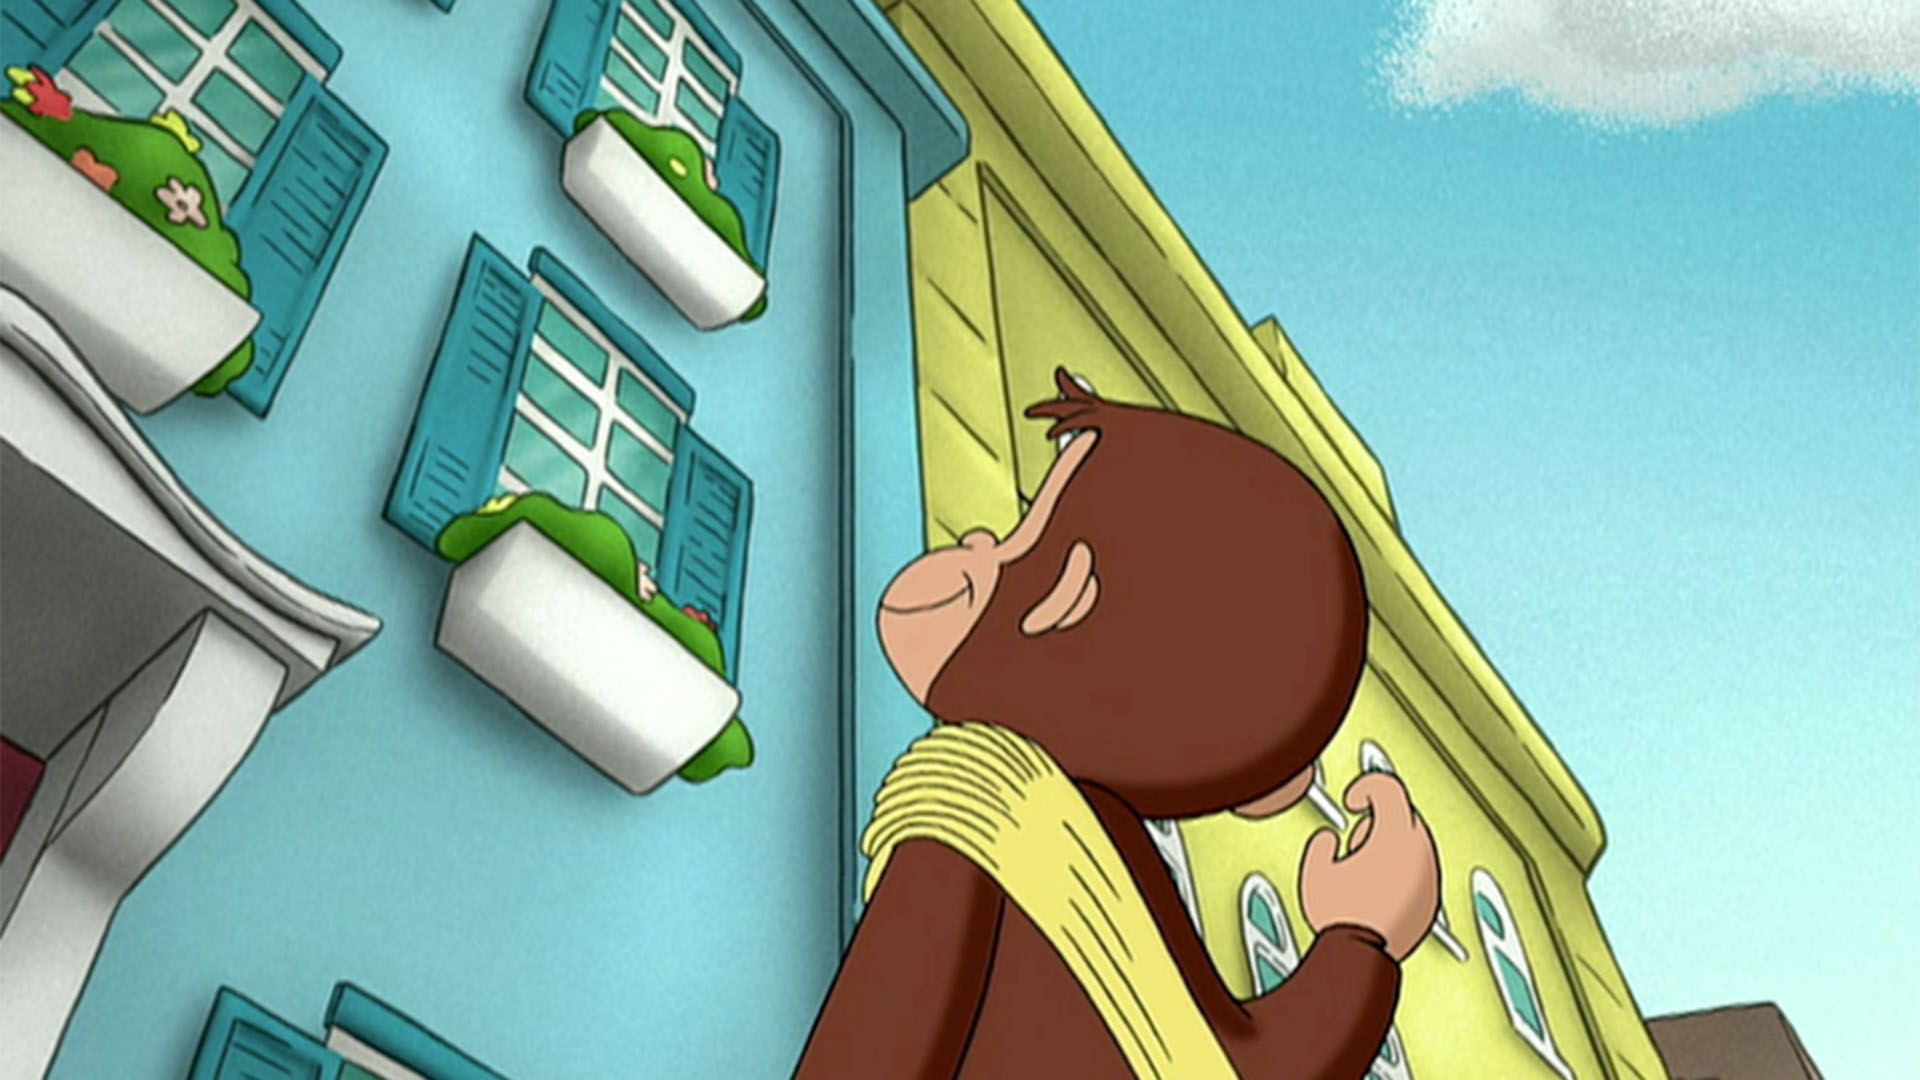 In The Video George Measures Up Curious George Needs To